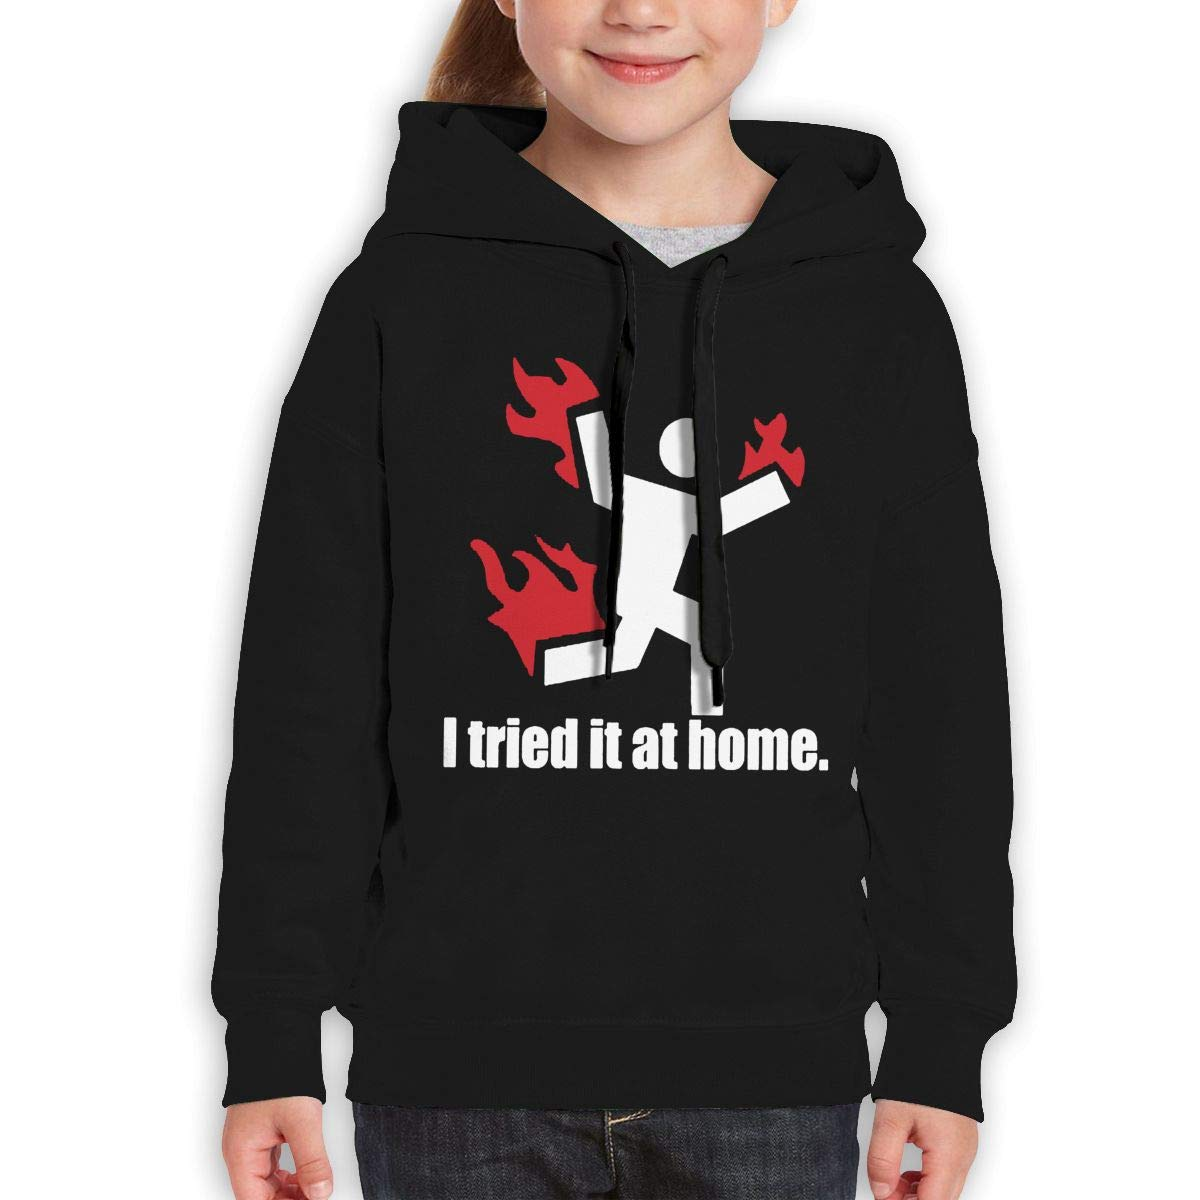 Boys Girls I Tried IT at Home Teen Youth Hoody Black